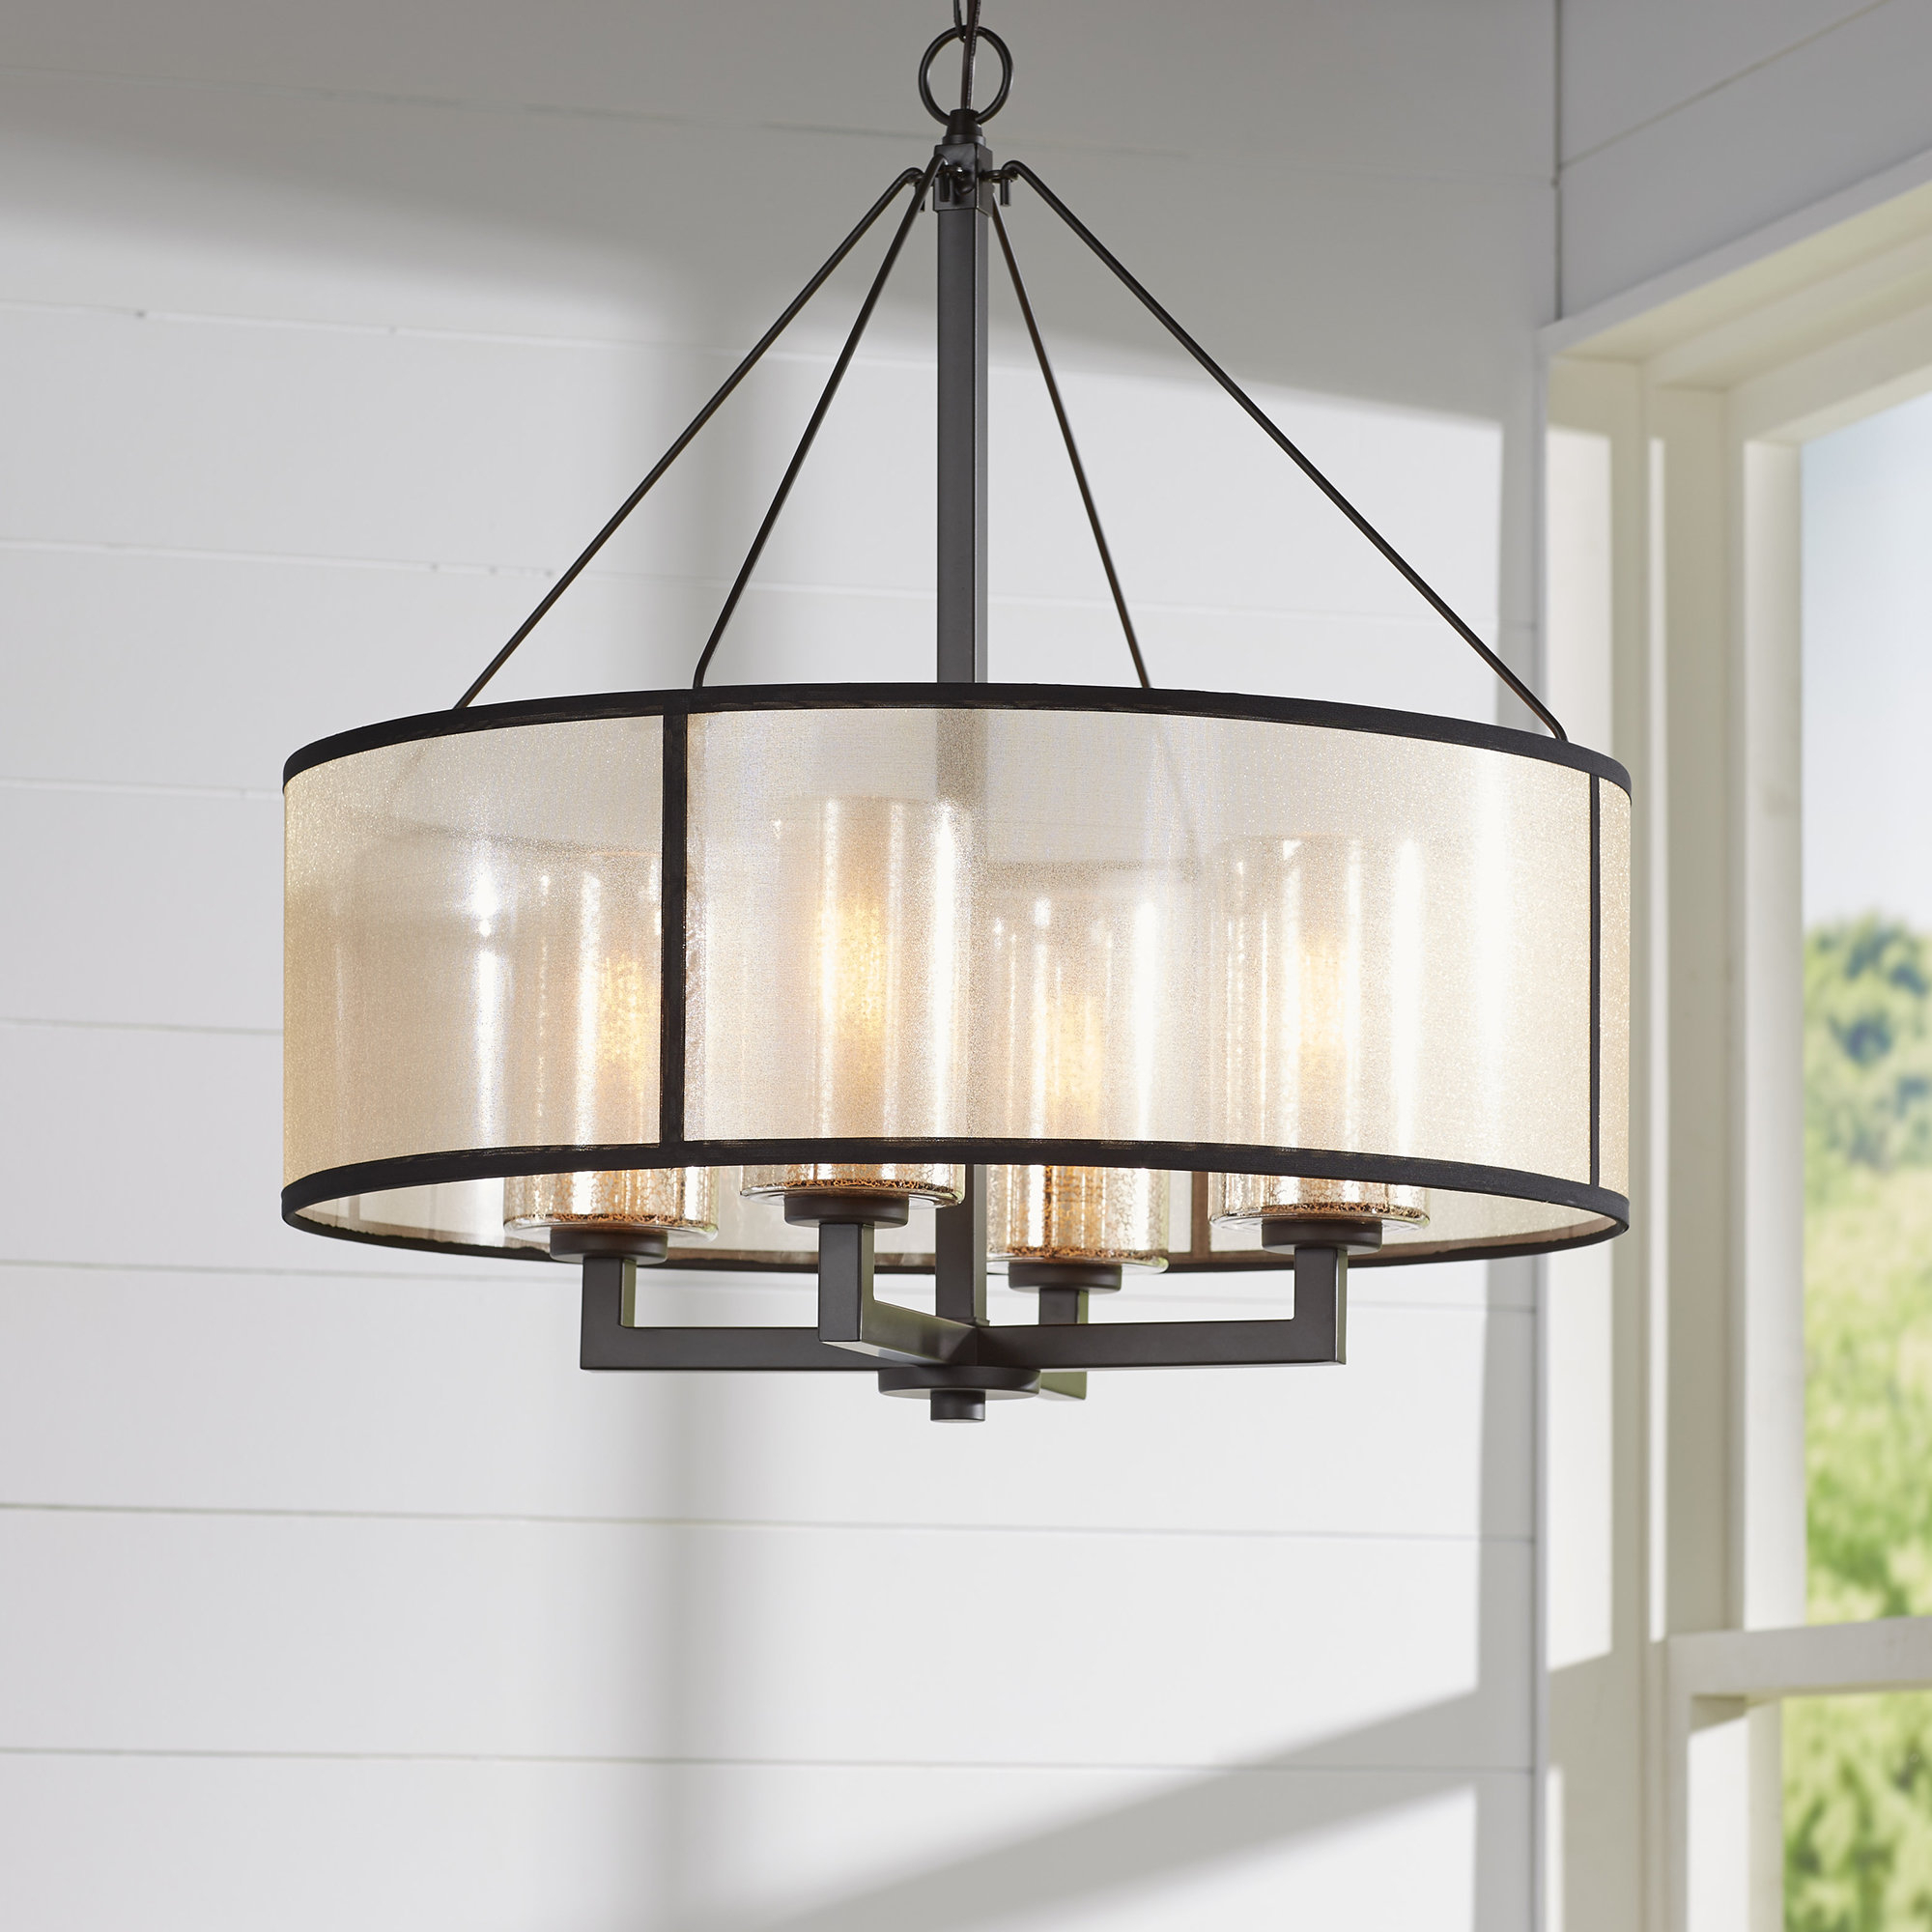 Gisselle 4 Light Drum Chandeliers Pertaining To 2019 Bisbee 4 Light Drum Chandelier (View 8 of 25)